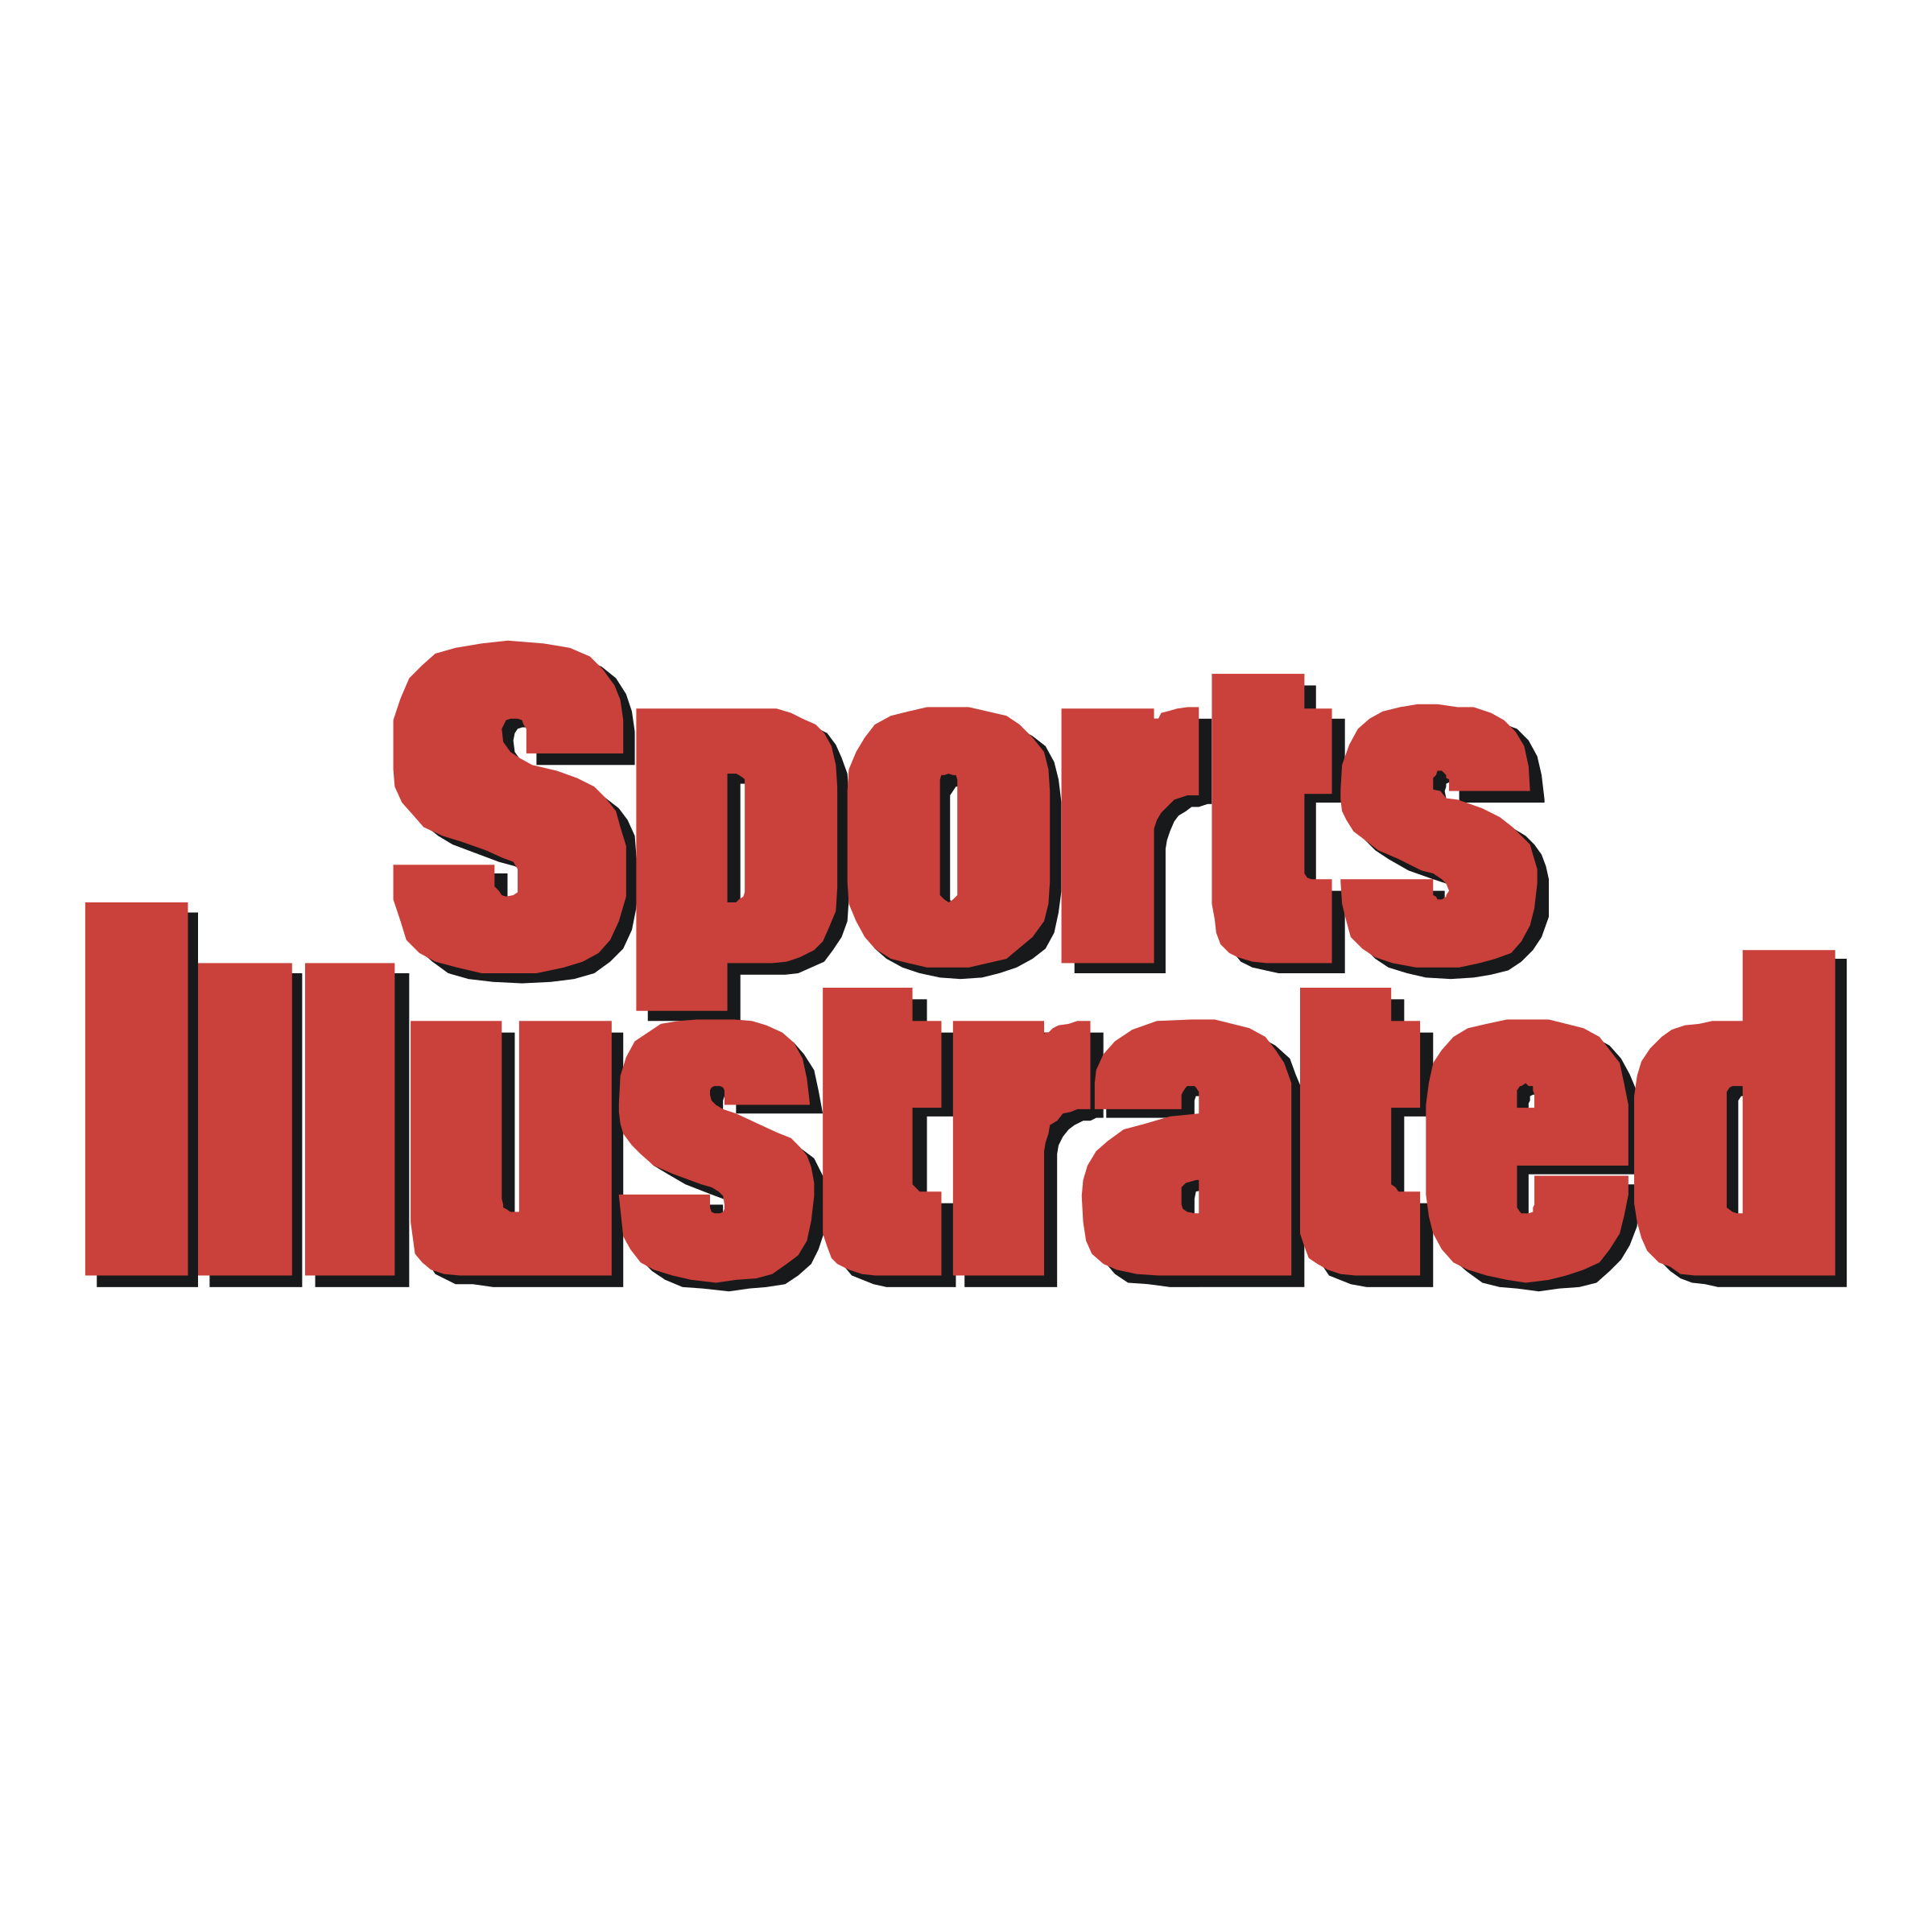 sports-illustrated-logo-png-transparent.png